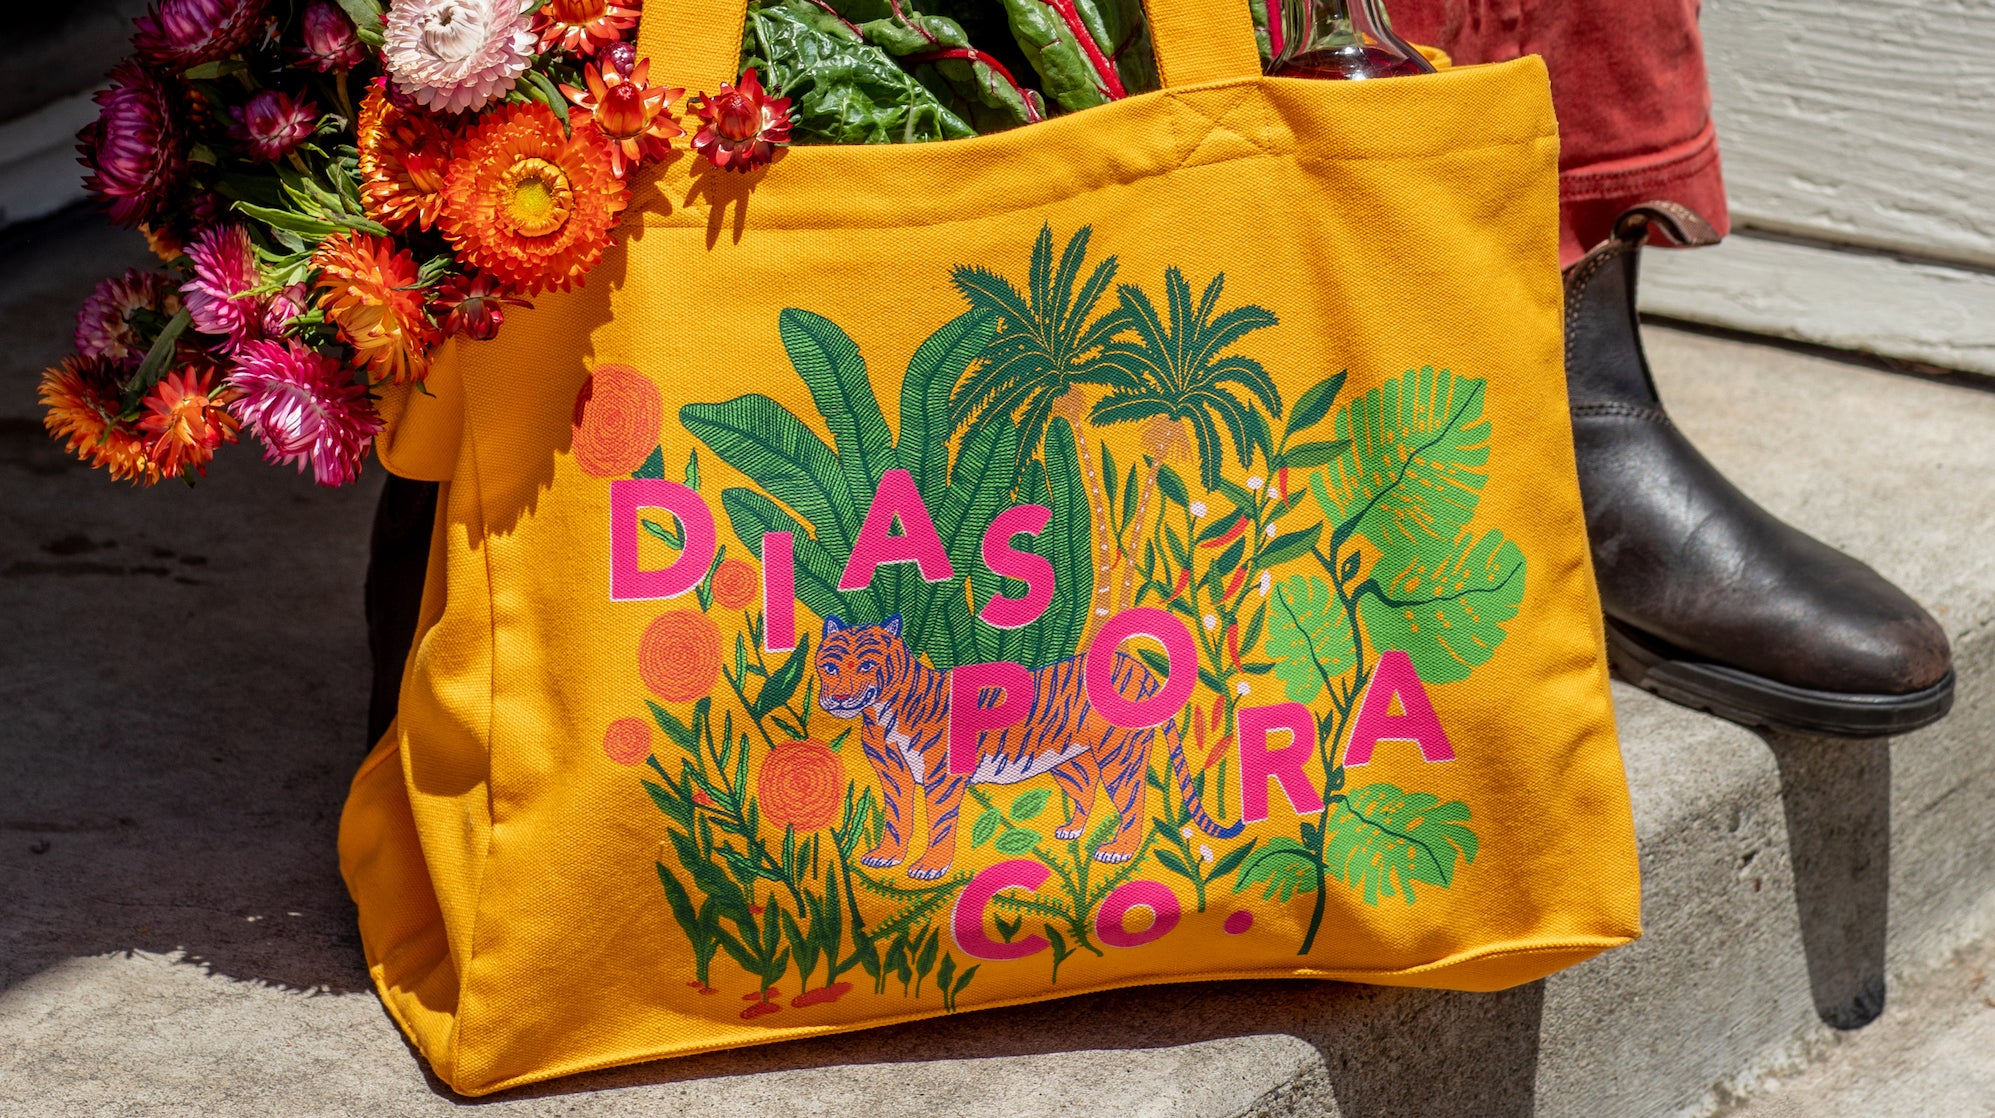 Photo of our market tote bag full of flowers and leafy greens